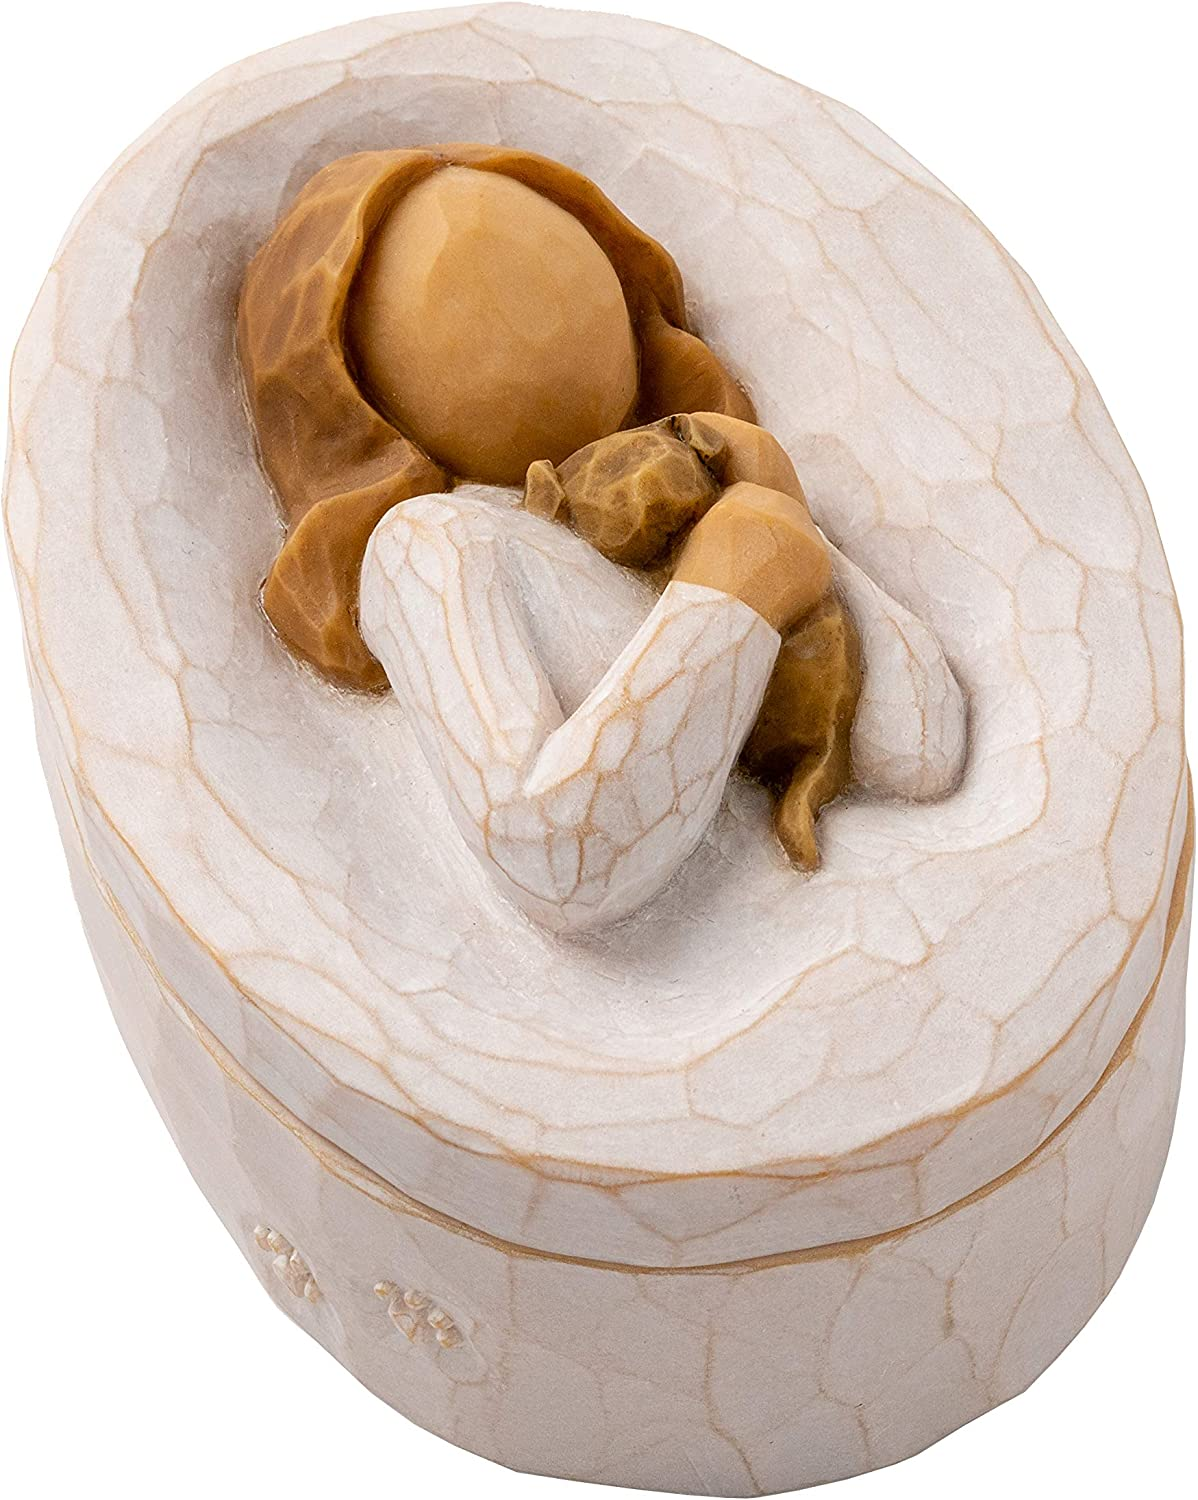 Willow Tree My Friend, Sculpted Hand-Painted Keepsake Box